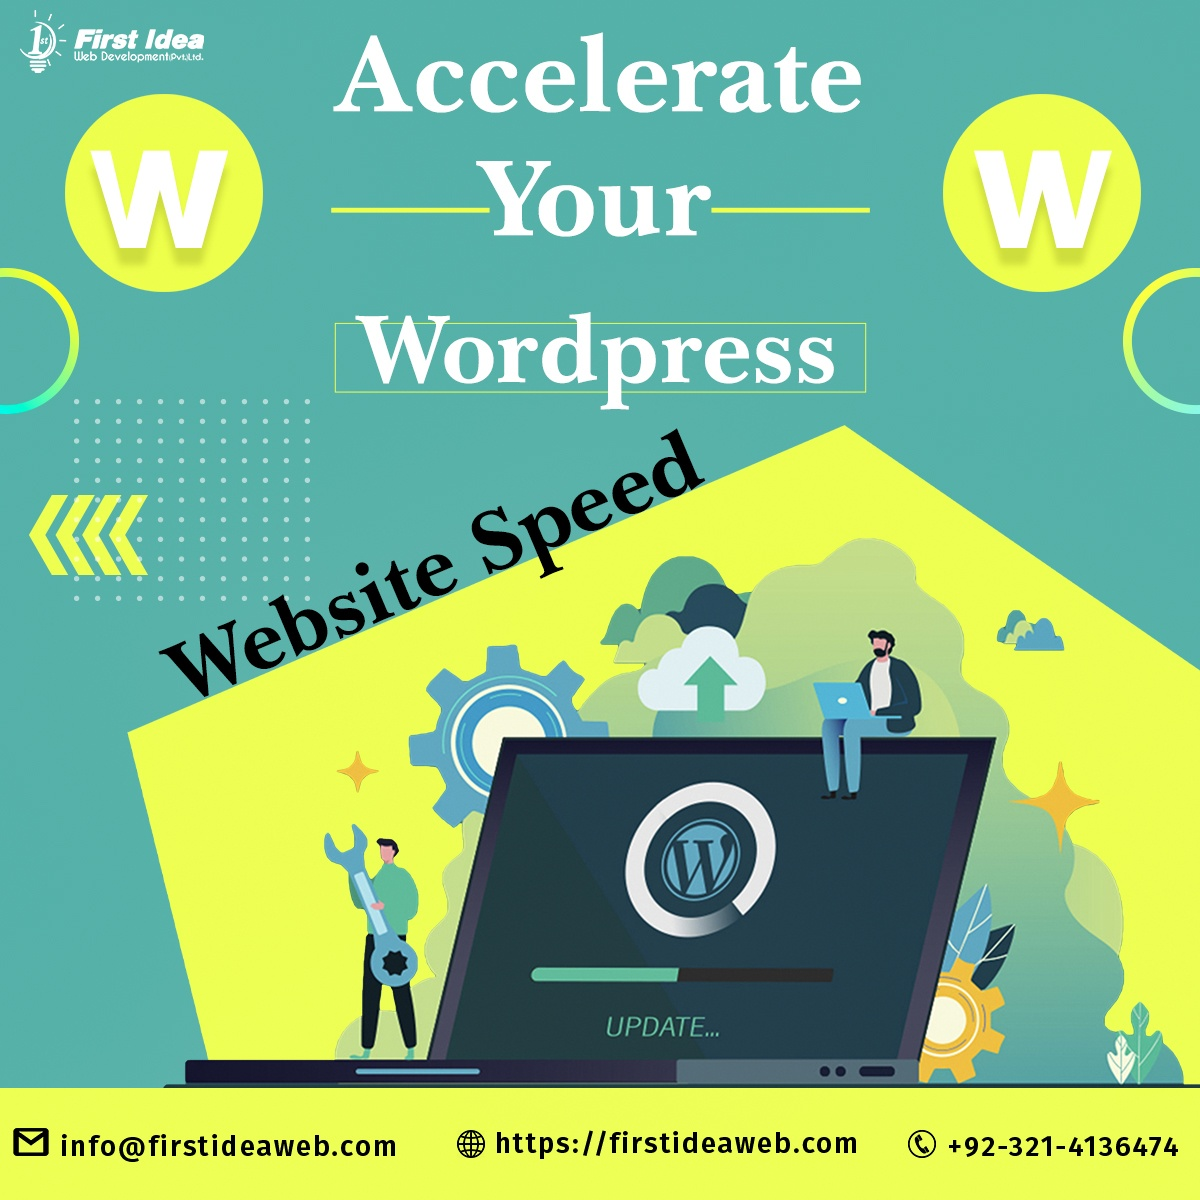 WordPress website speed, WordPress website speed optimization, WordPress page speed optimization, optimize the WordPress website